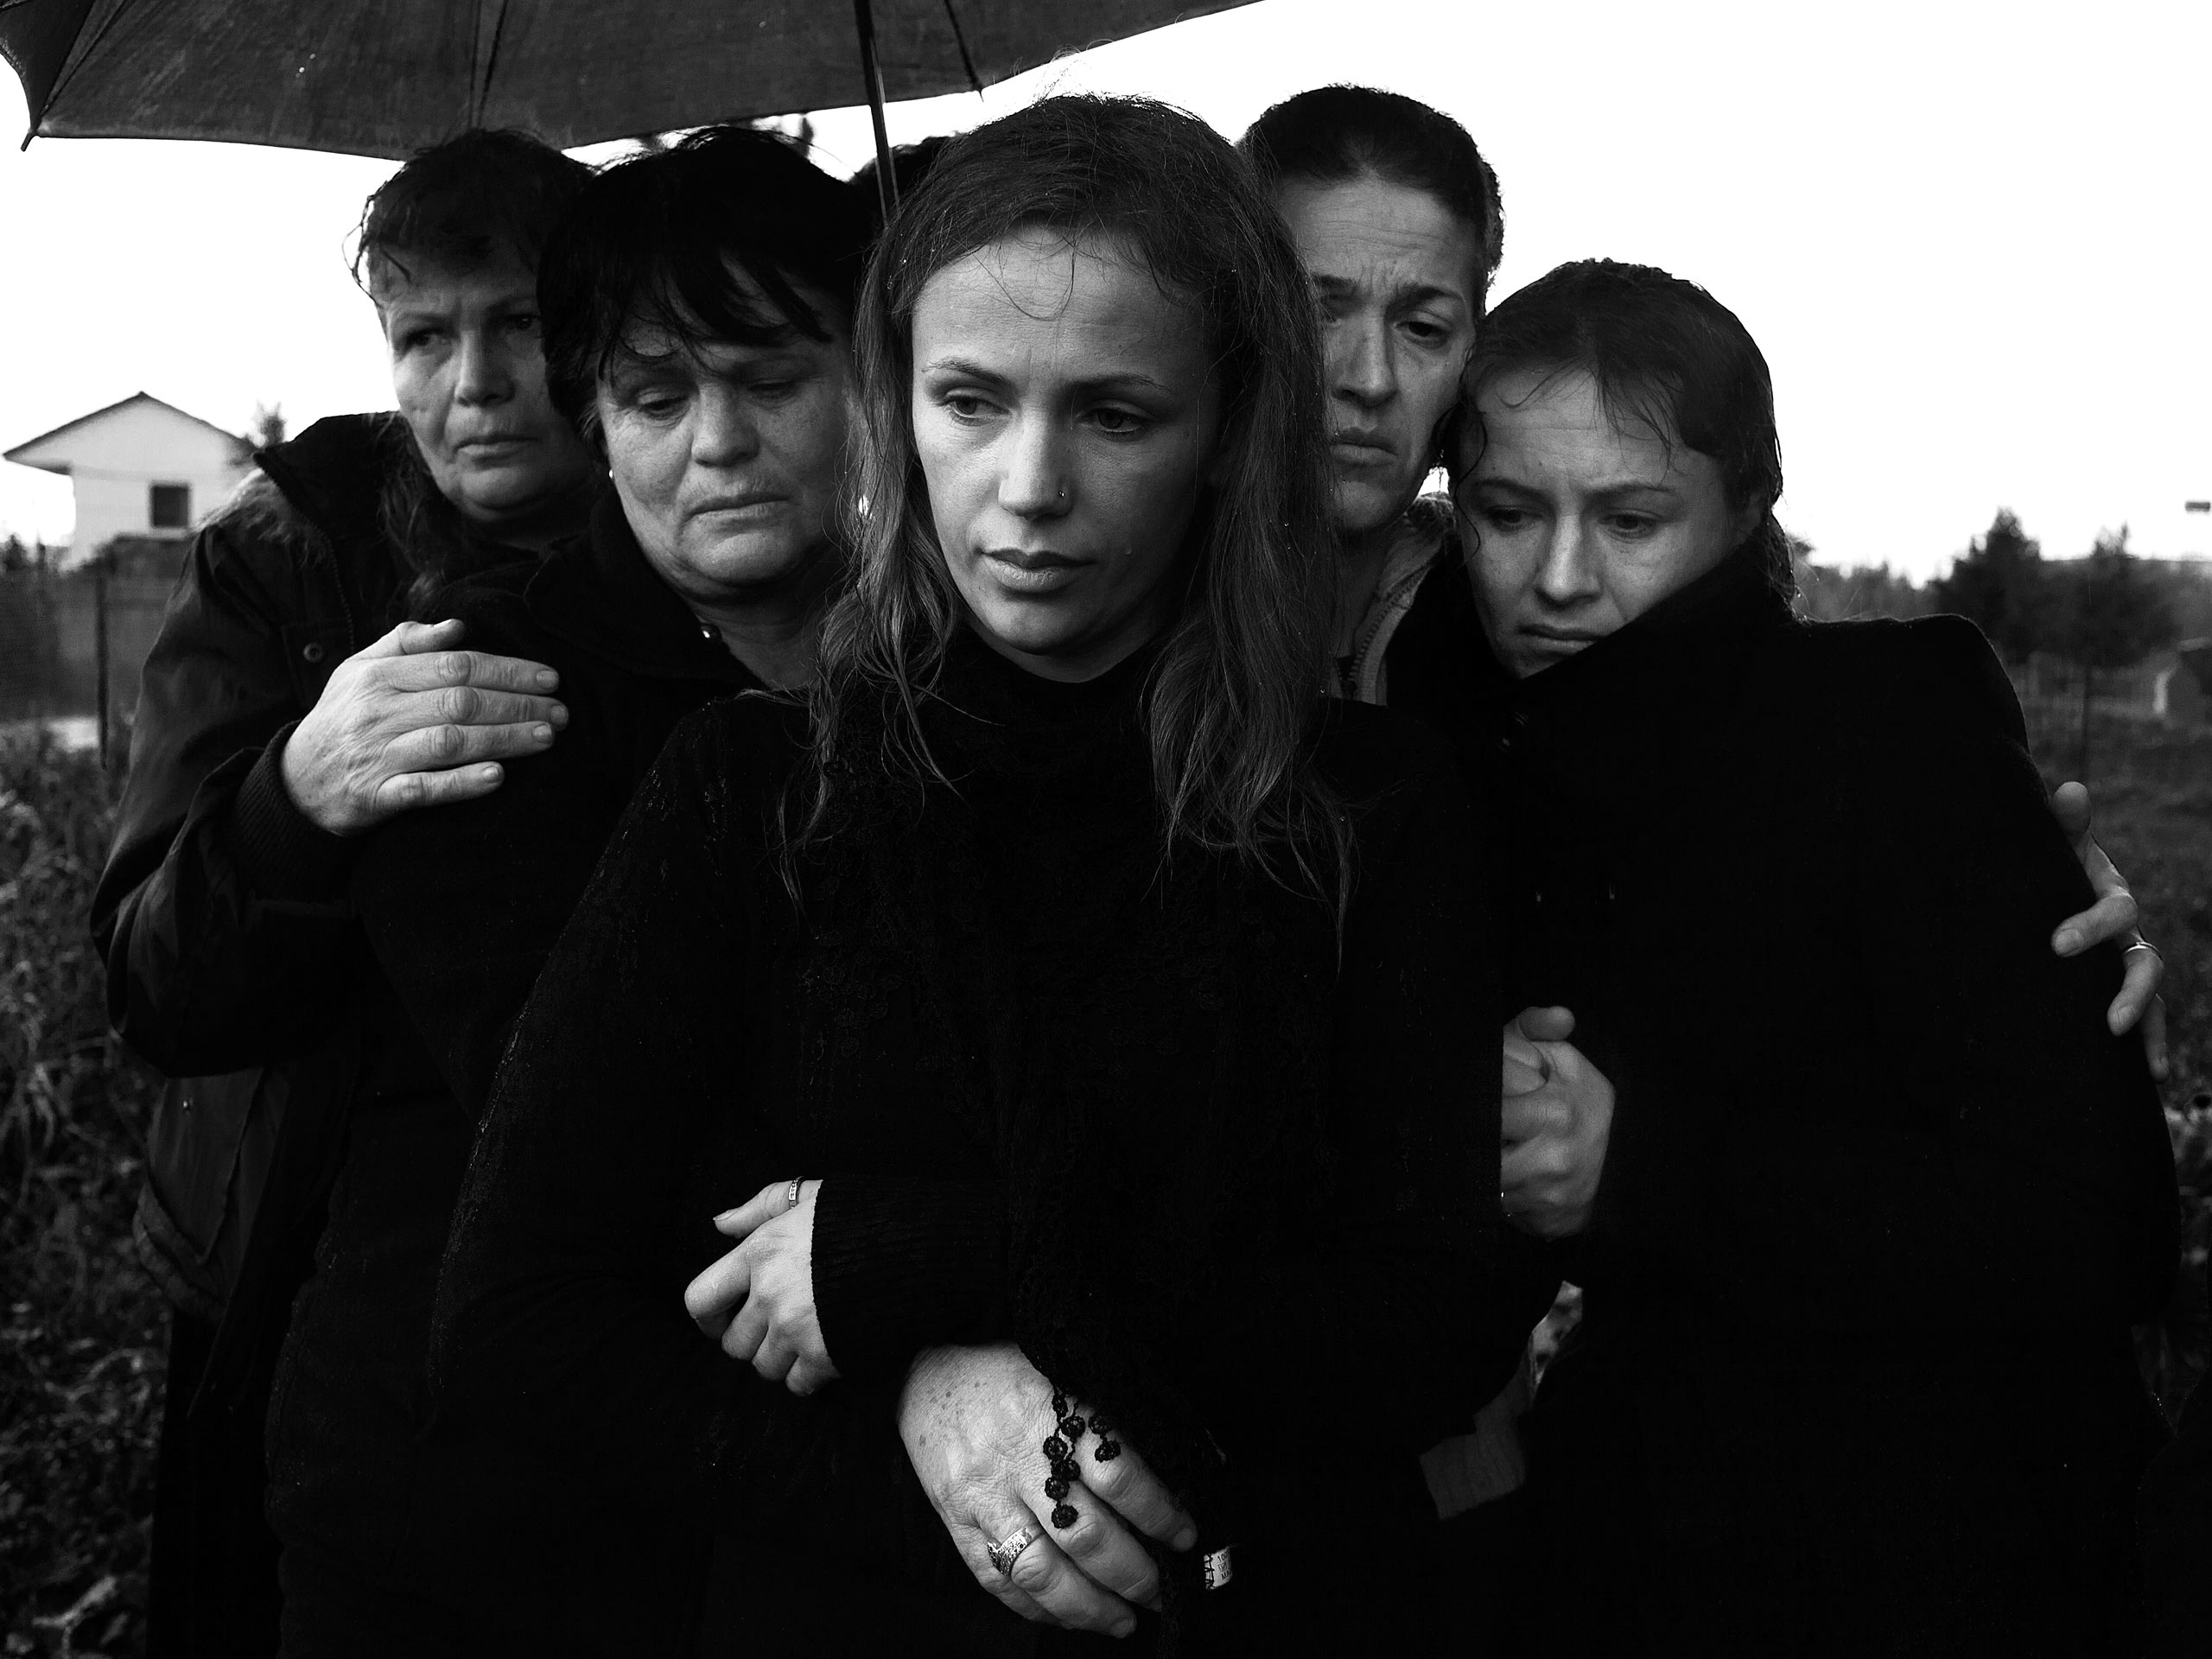 Women clustered together during a funeral. According to Albanian traditions, men and women attend funerals in separate groups.                     Tirana, Albania, 2012.